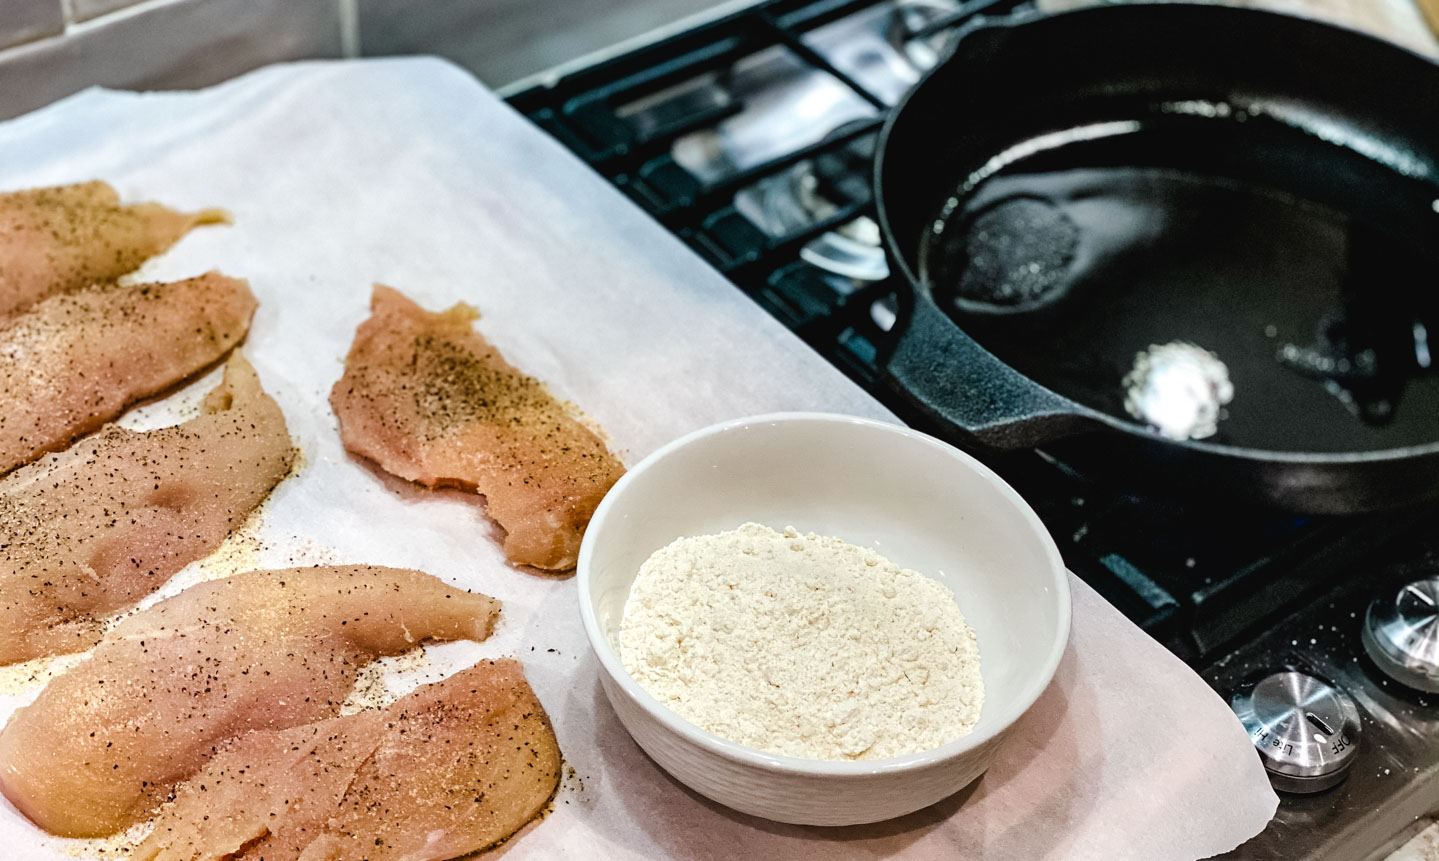 Raw chicken on parchment paper with seasonings along with a bowl of flour and cast iron skillet on a stove.